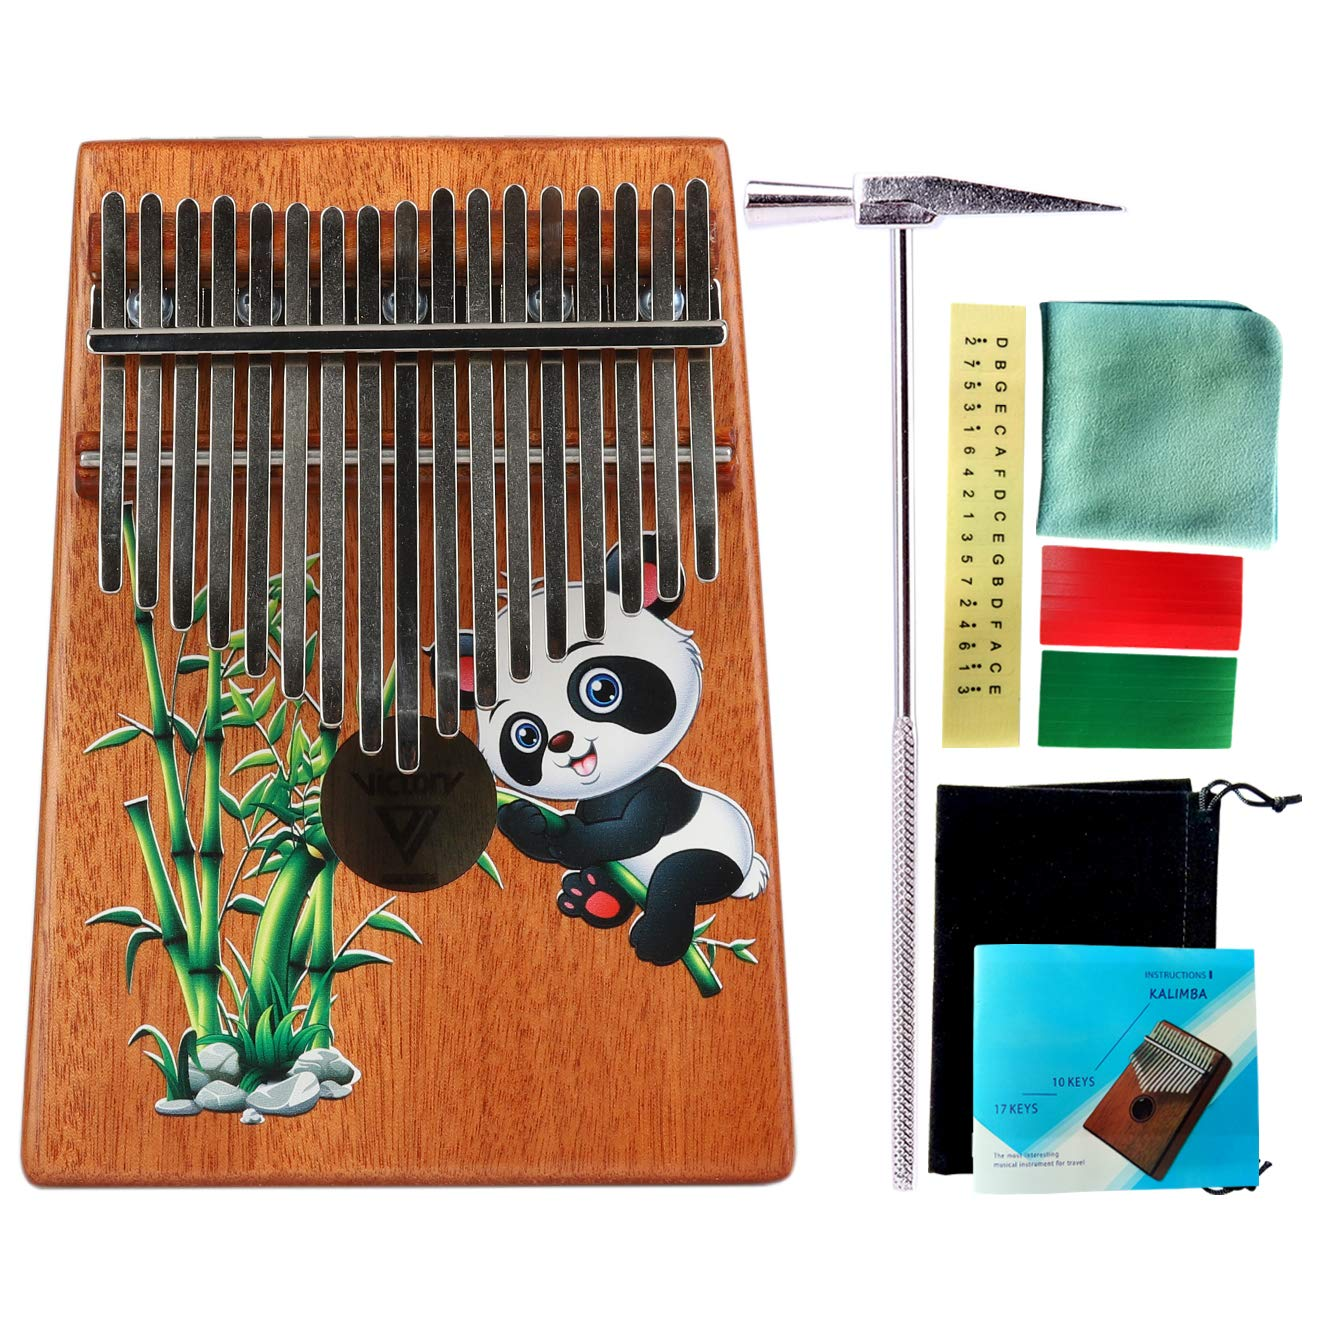 VI VICTORY 17 Key Colorful Kalimba African Thumb Piano Finger Percussion Keyboard Music Instruments - Panda by VI VICTORY